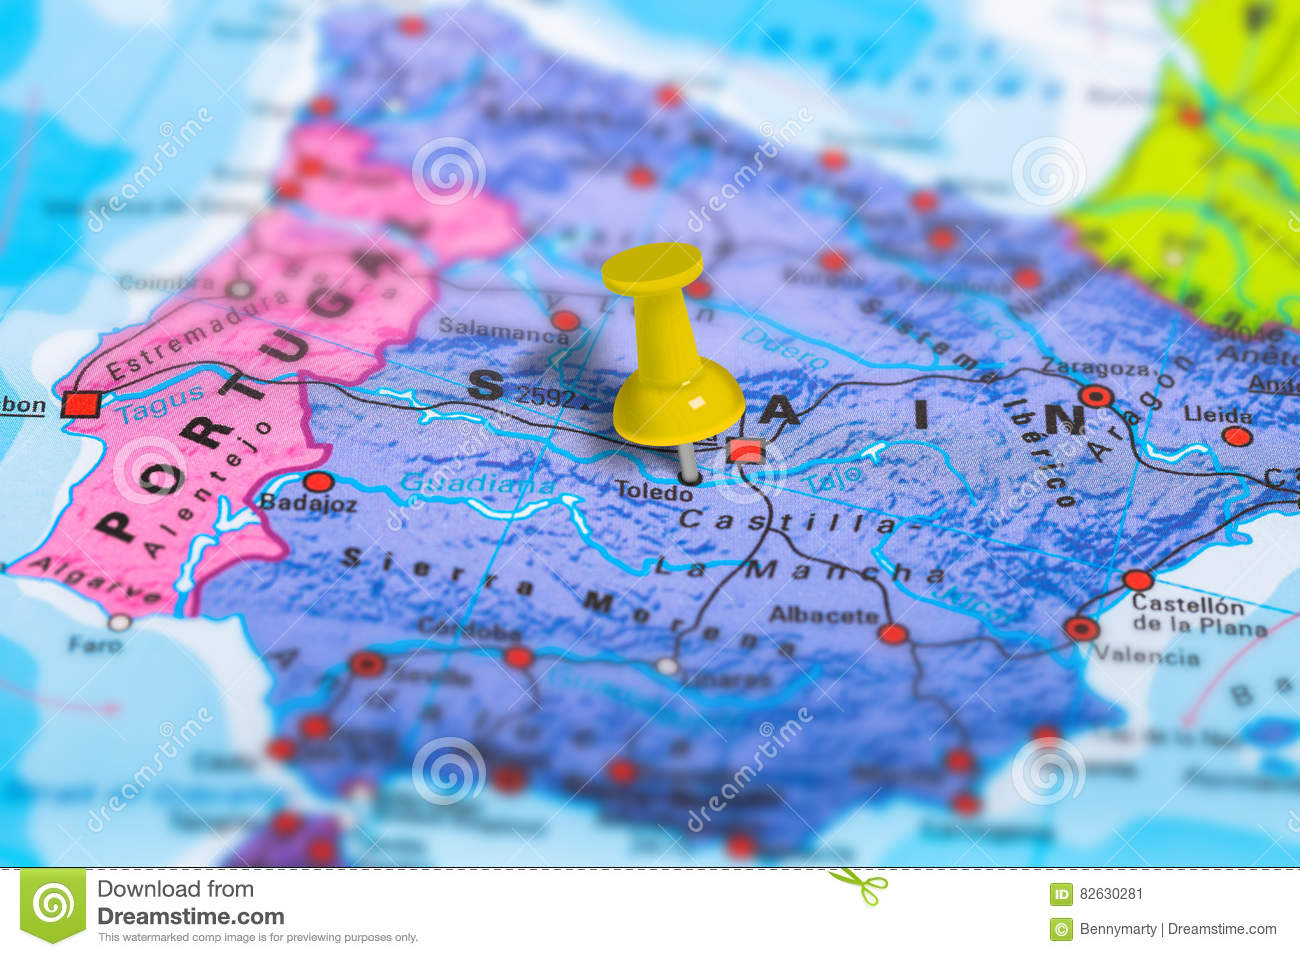 Toledo Spain Map Stock Image Image Of Marking Geographical 82630281